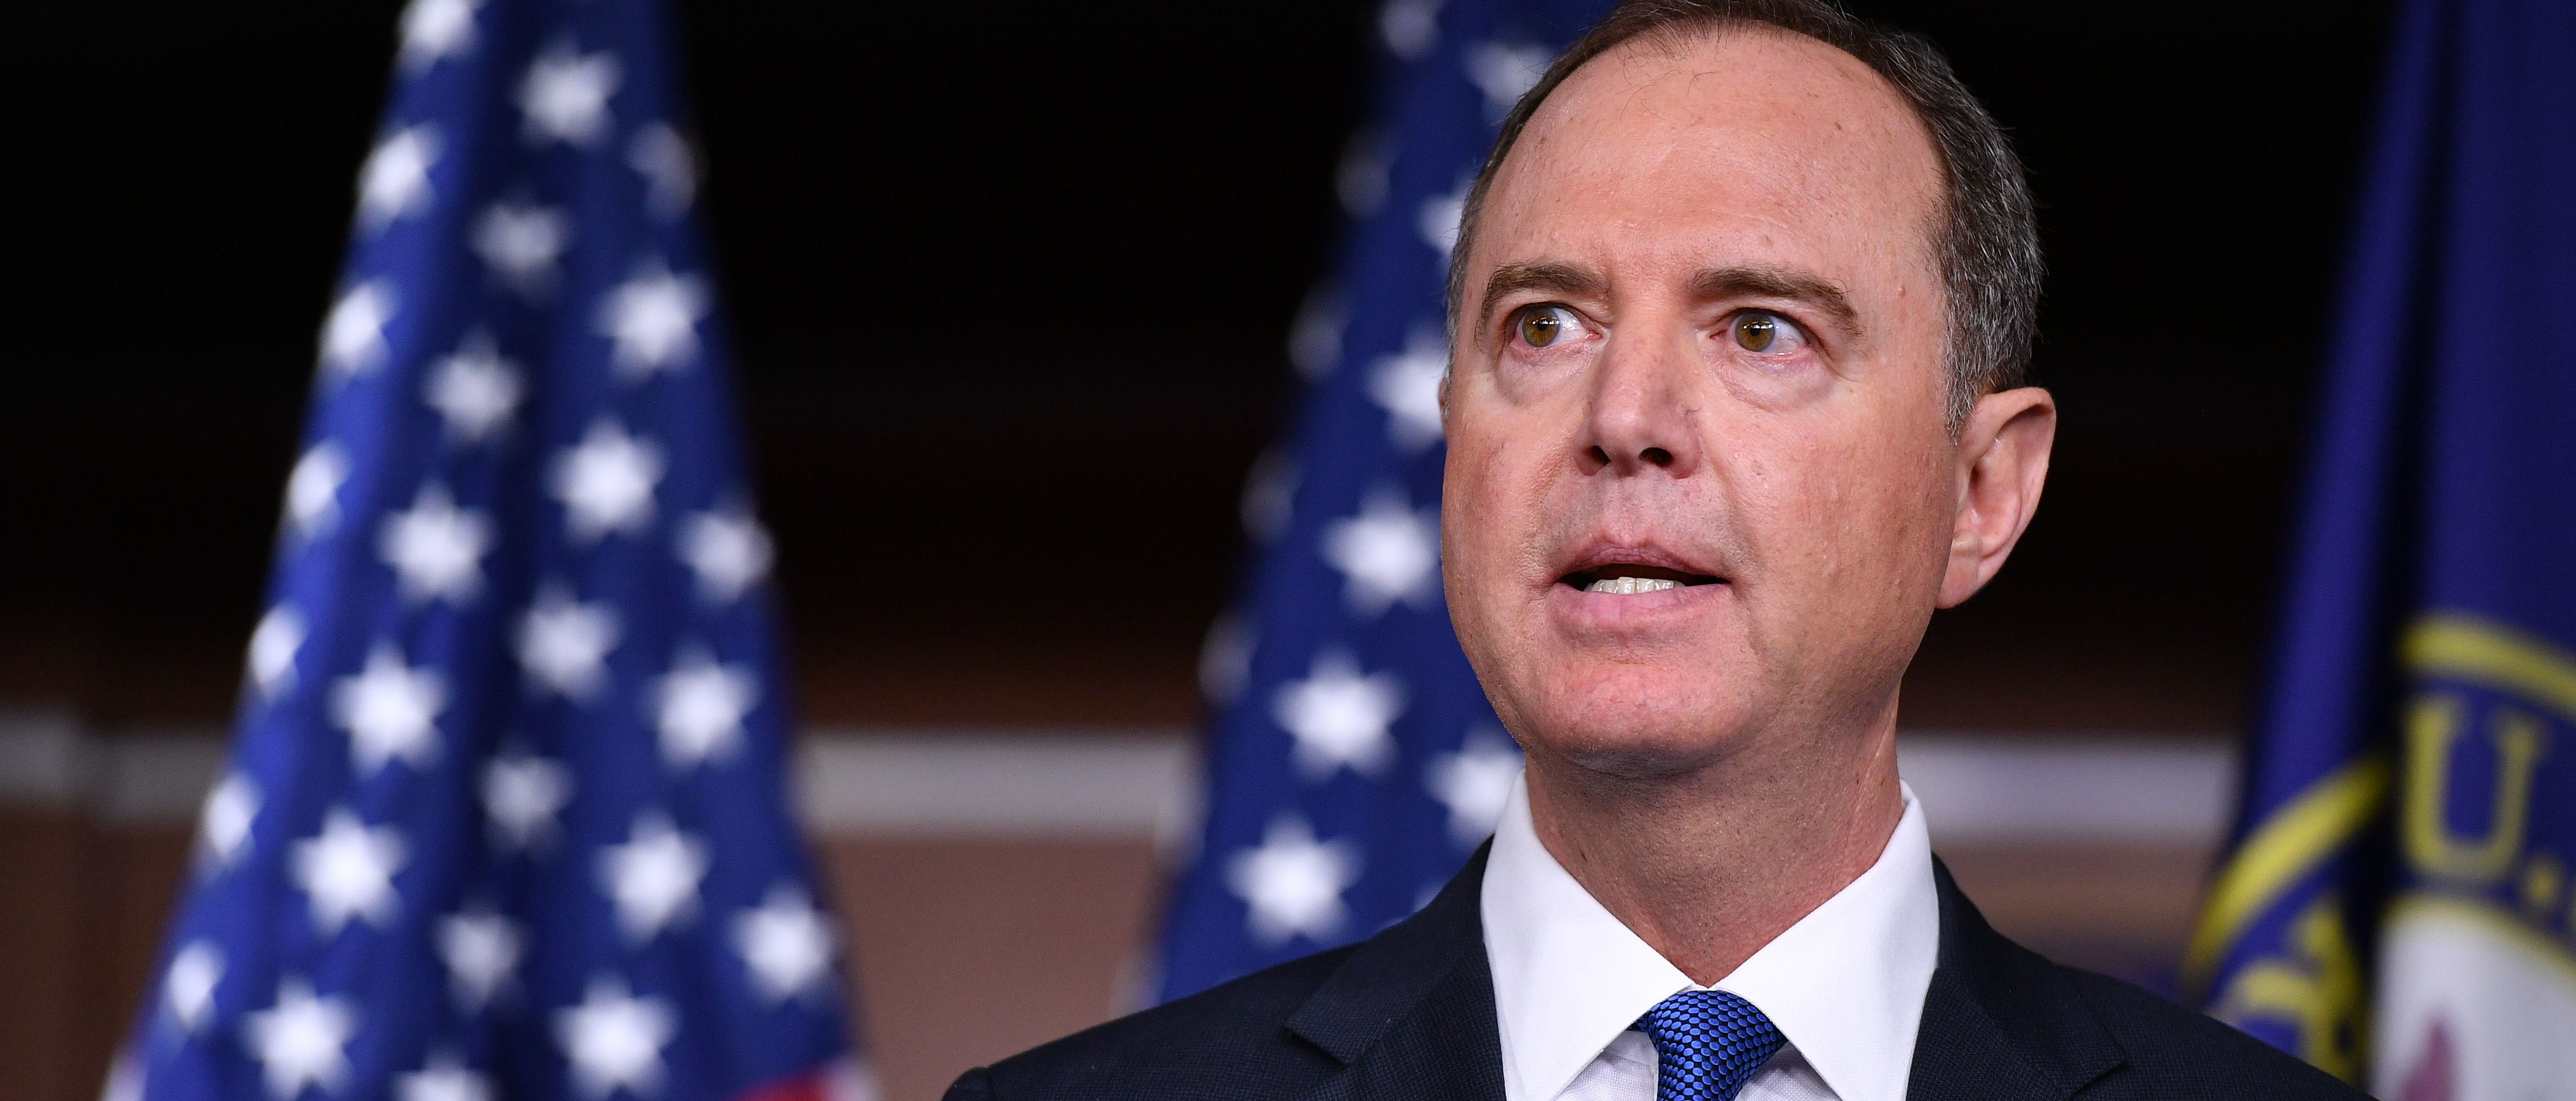 Adam Schiff Says Trump 'Doesn't Give A Sh*t About What's Good For Our Country'